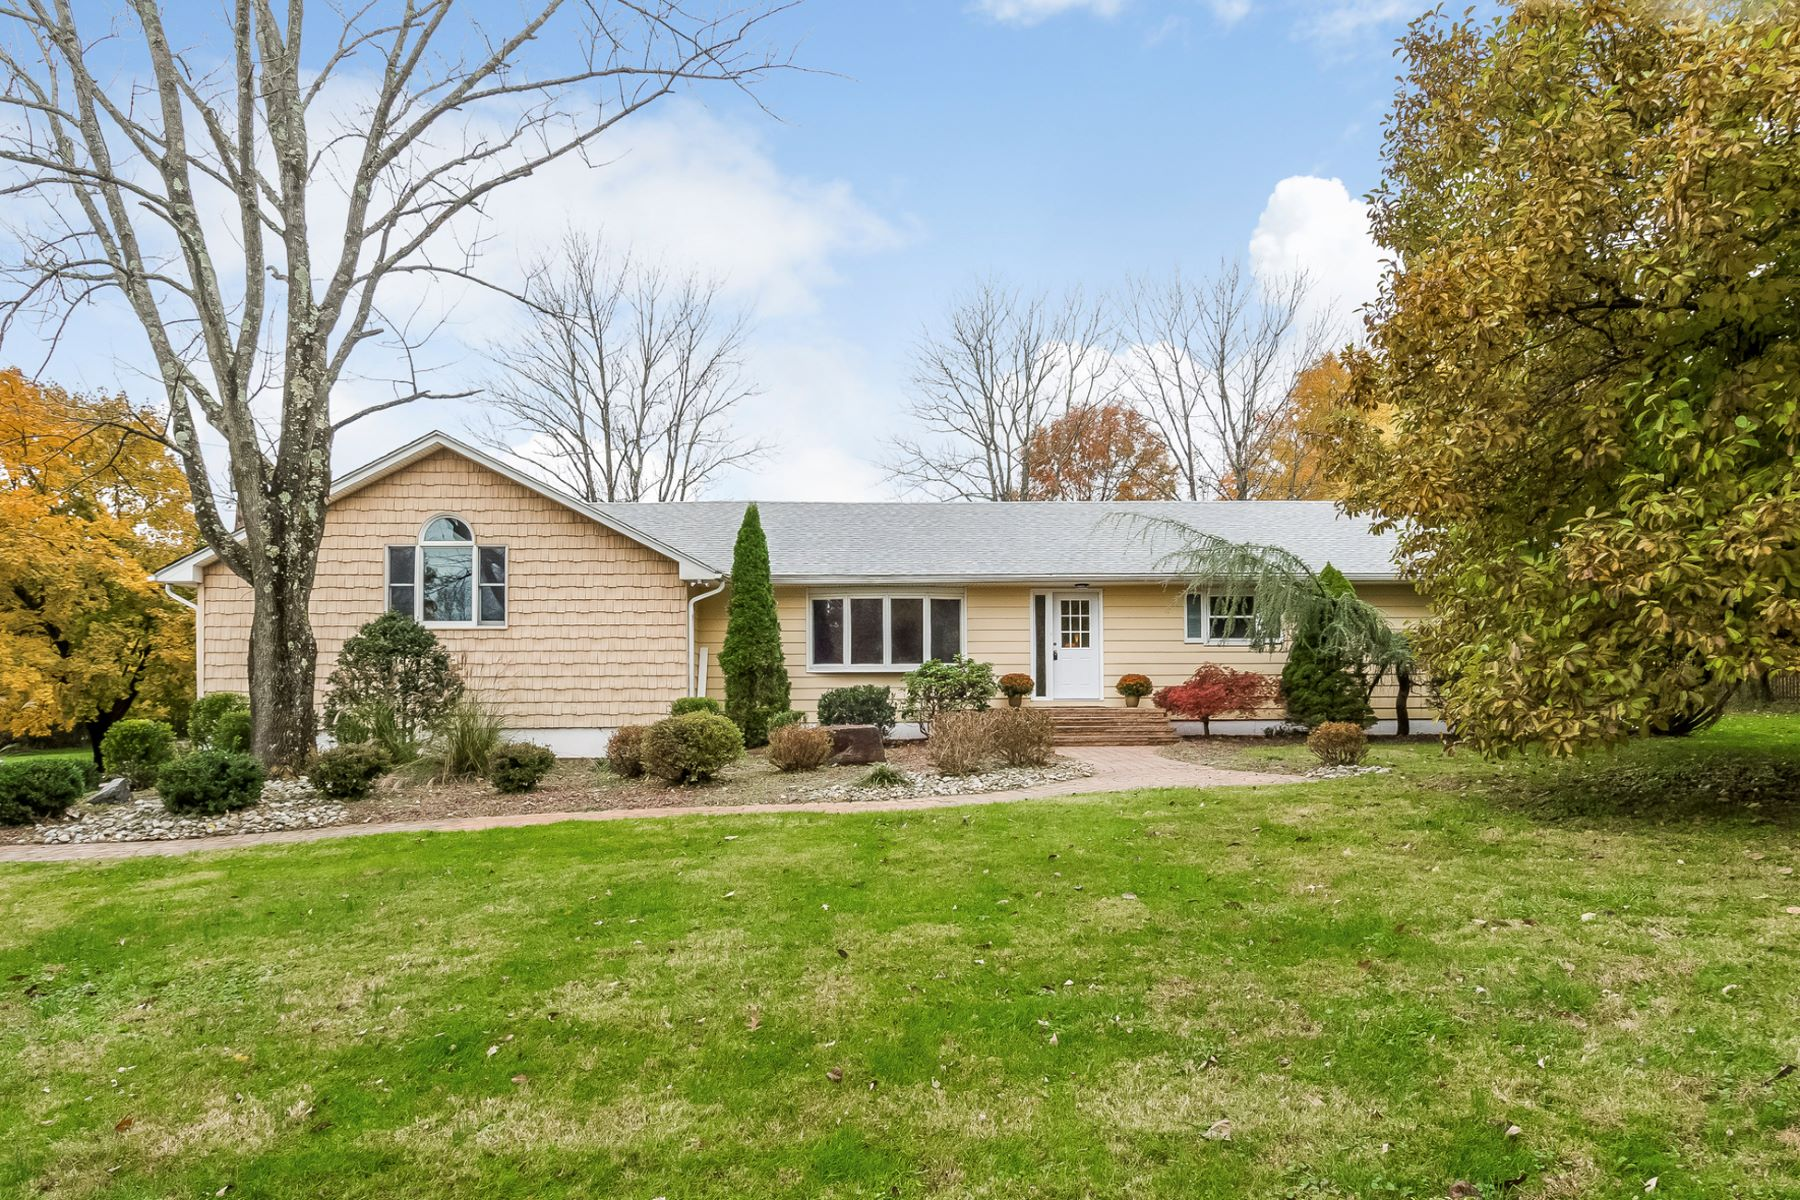 Single Family Home for Sale at Beautifully Renovated Expanded Ranch 2 Winding Brook Way, Titusville, New Jersey 08560 United StatesMunicipality: Hopewell Township